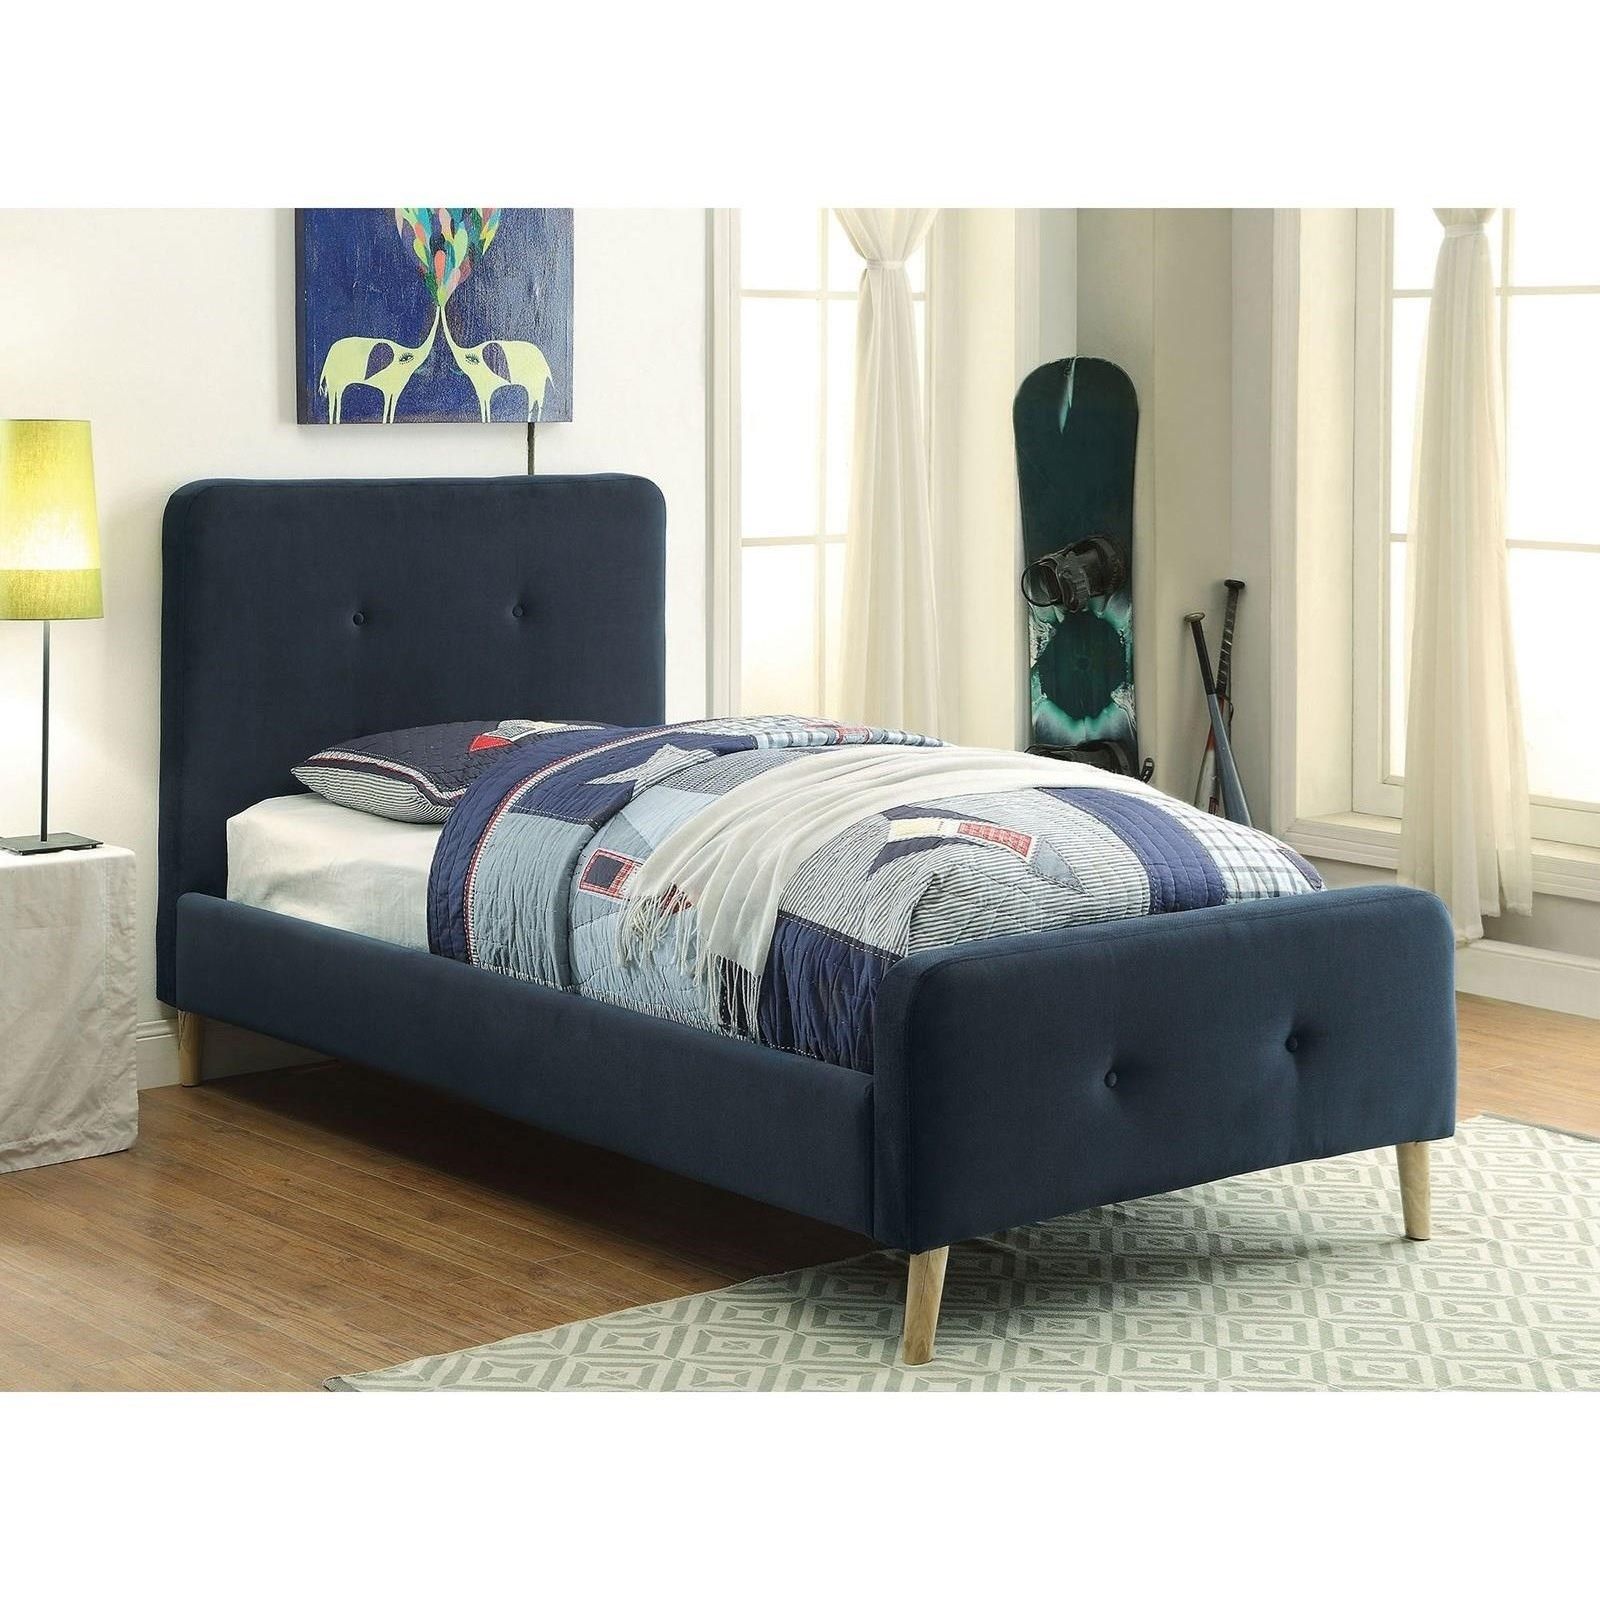 Barney Twin Bed at Household Furniture